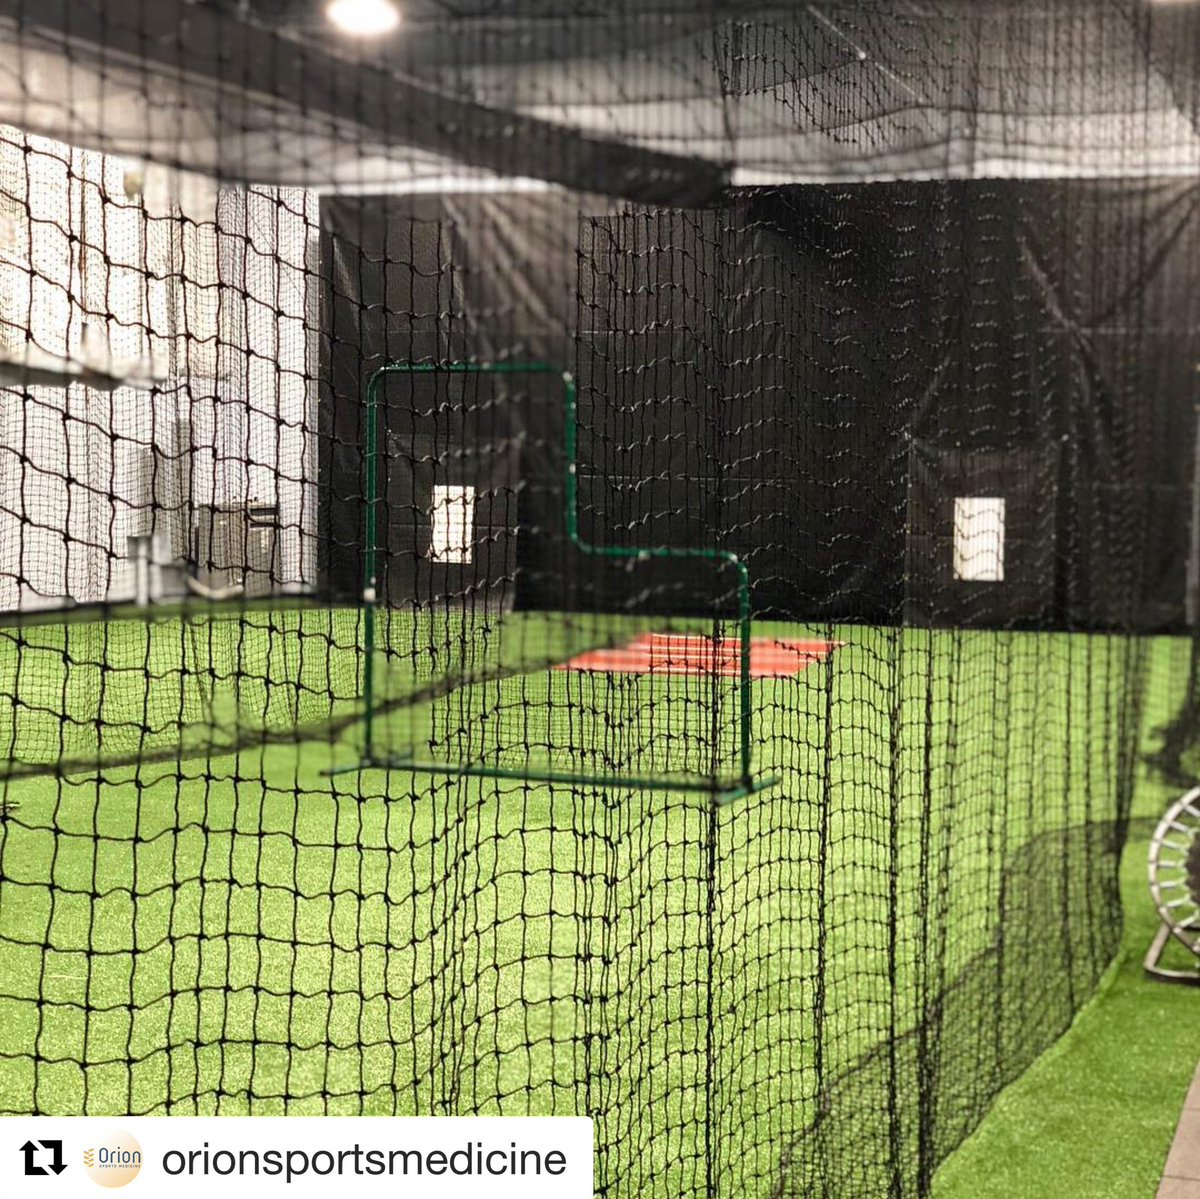 Who's up to #bat? Our netting is up! Schedule your #softball or #baseball team workout now! #hitting #pitching